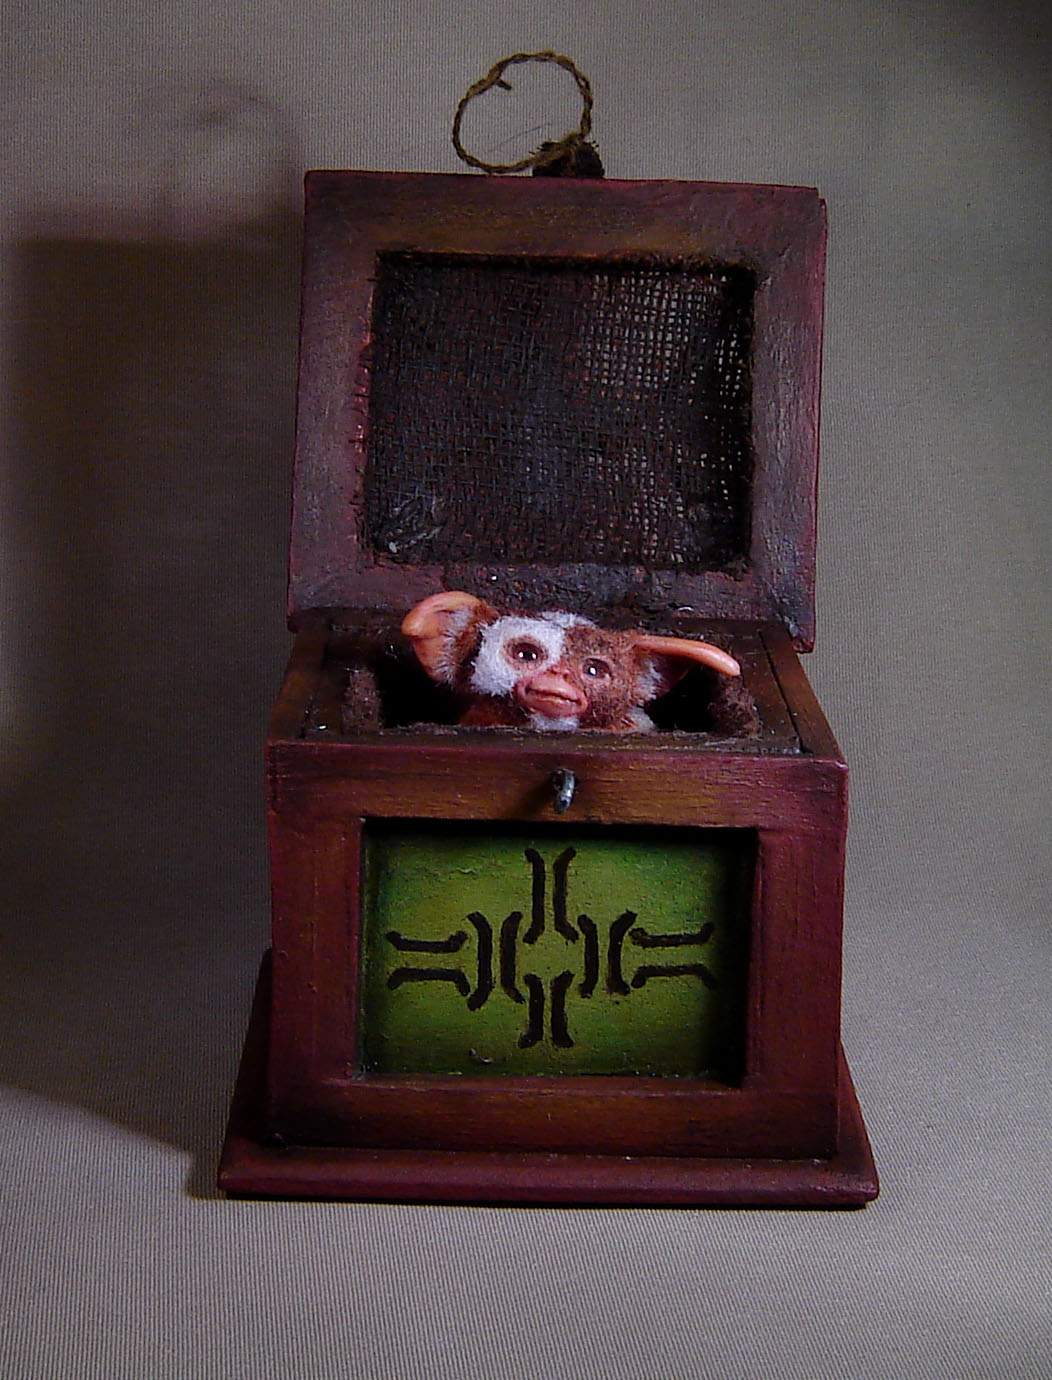 1:12 Miniature Gizmo Mogwai with box dollhouse doll agzr studios